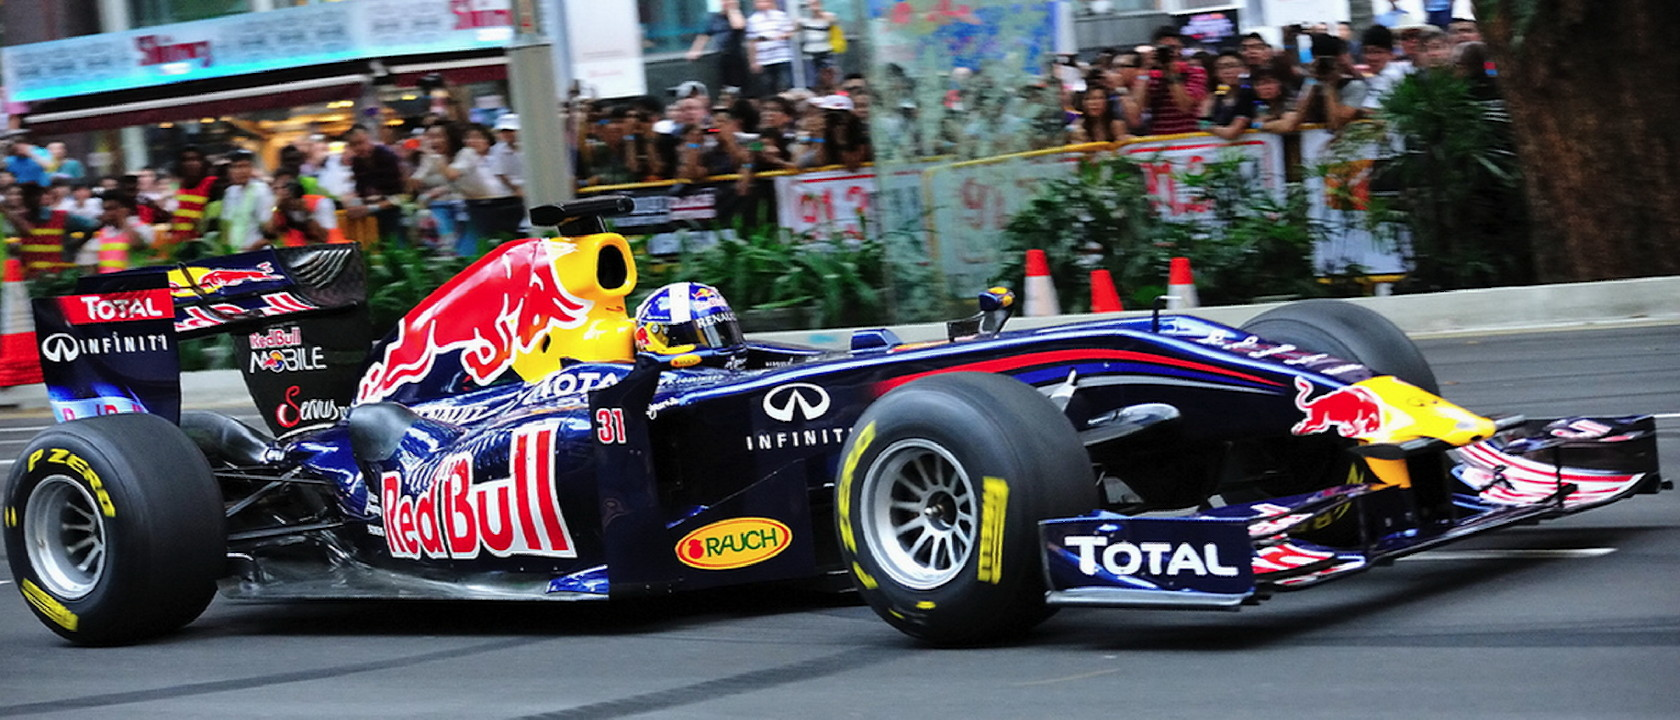 coulthard_singapore2011-1680x720